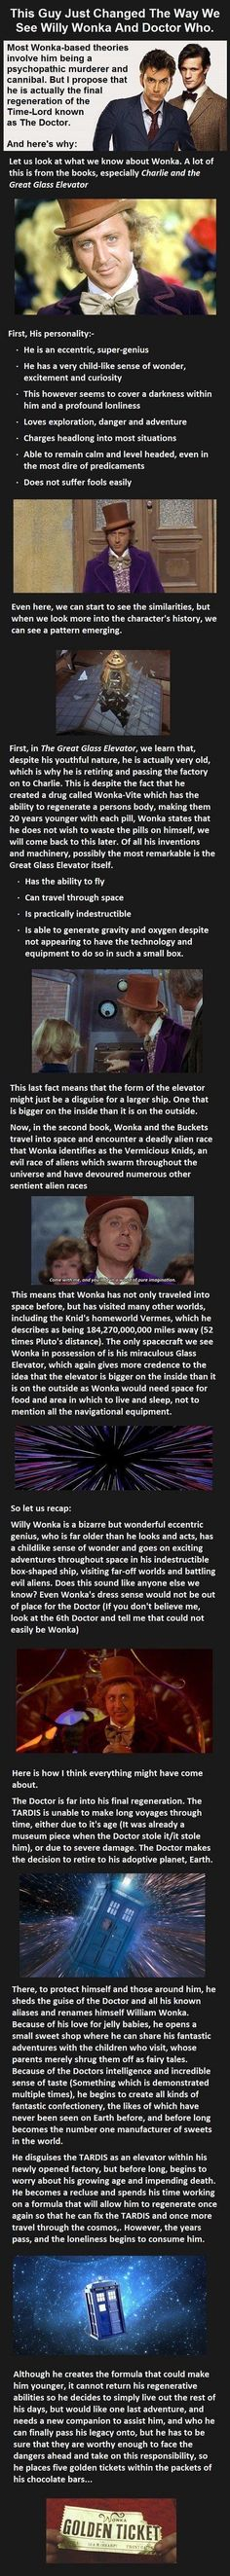 Willy Wonka / Doctor Who theory. Unfounded, of course, but very imaginative and smart! It's been years since I read 'The Great Glass Elevator,' but it is very Doctor Who, isn't it?